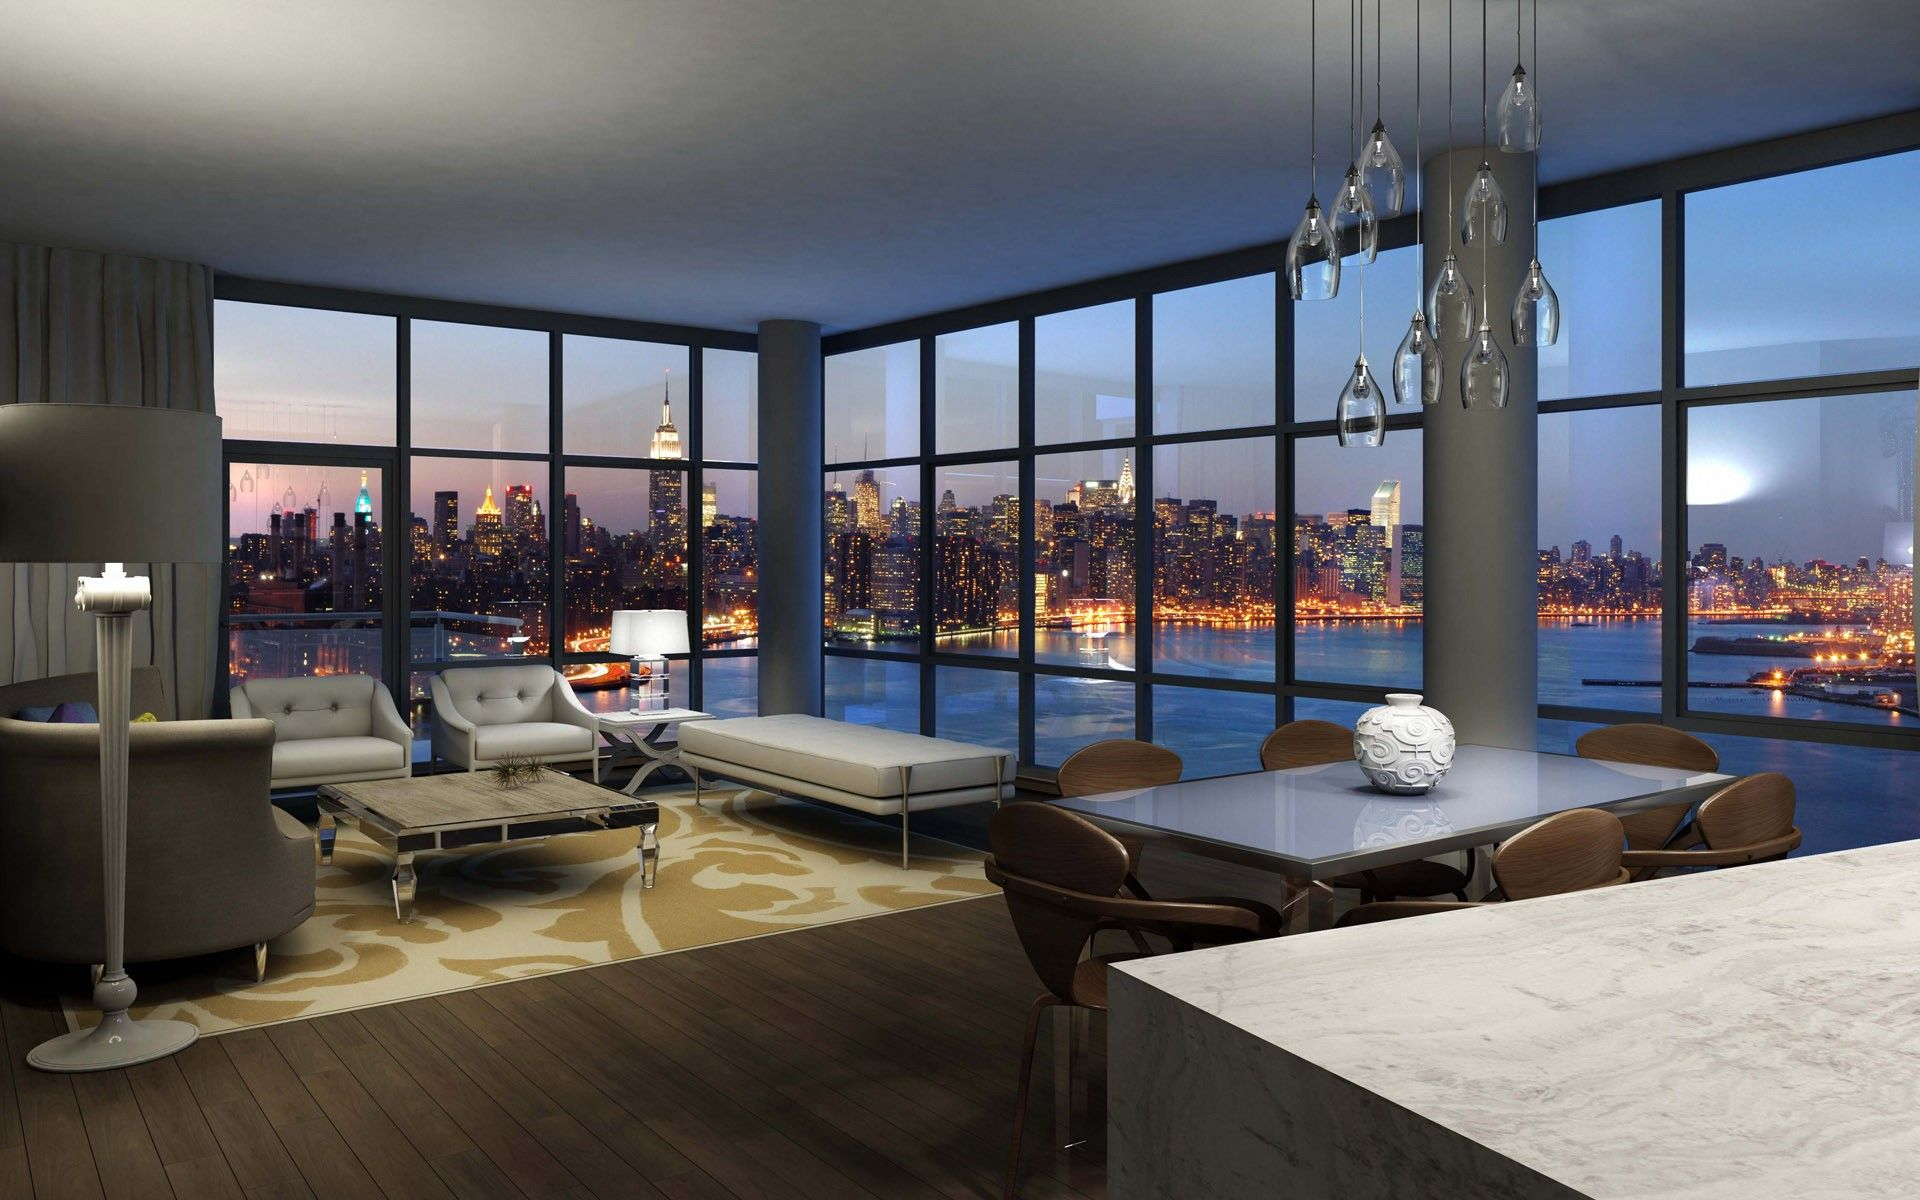 Interior Design Apartment With City View Desktop 1920 1200